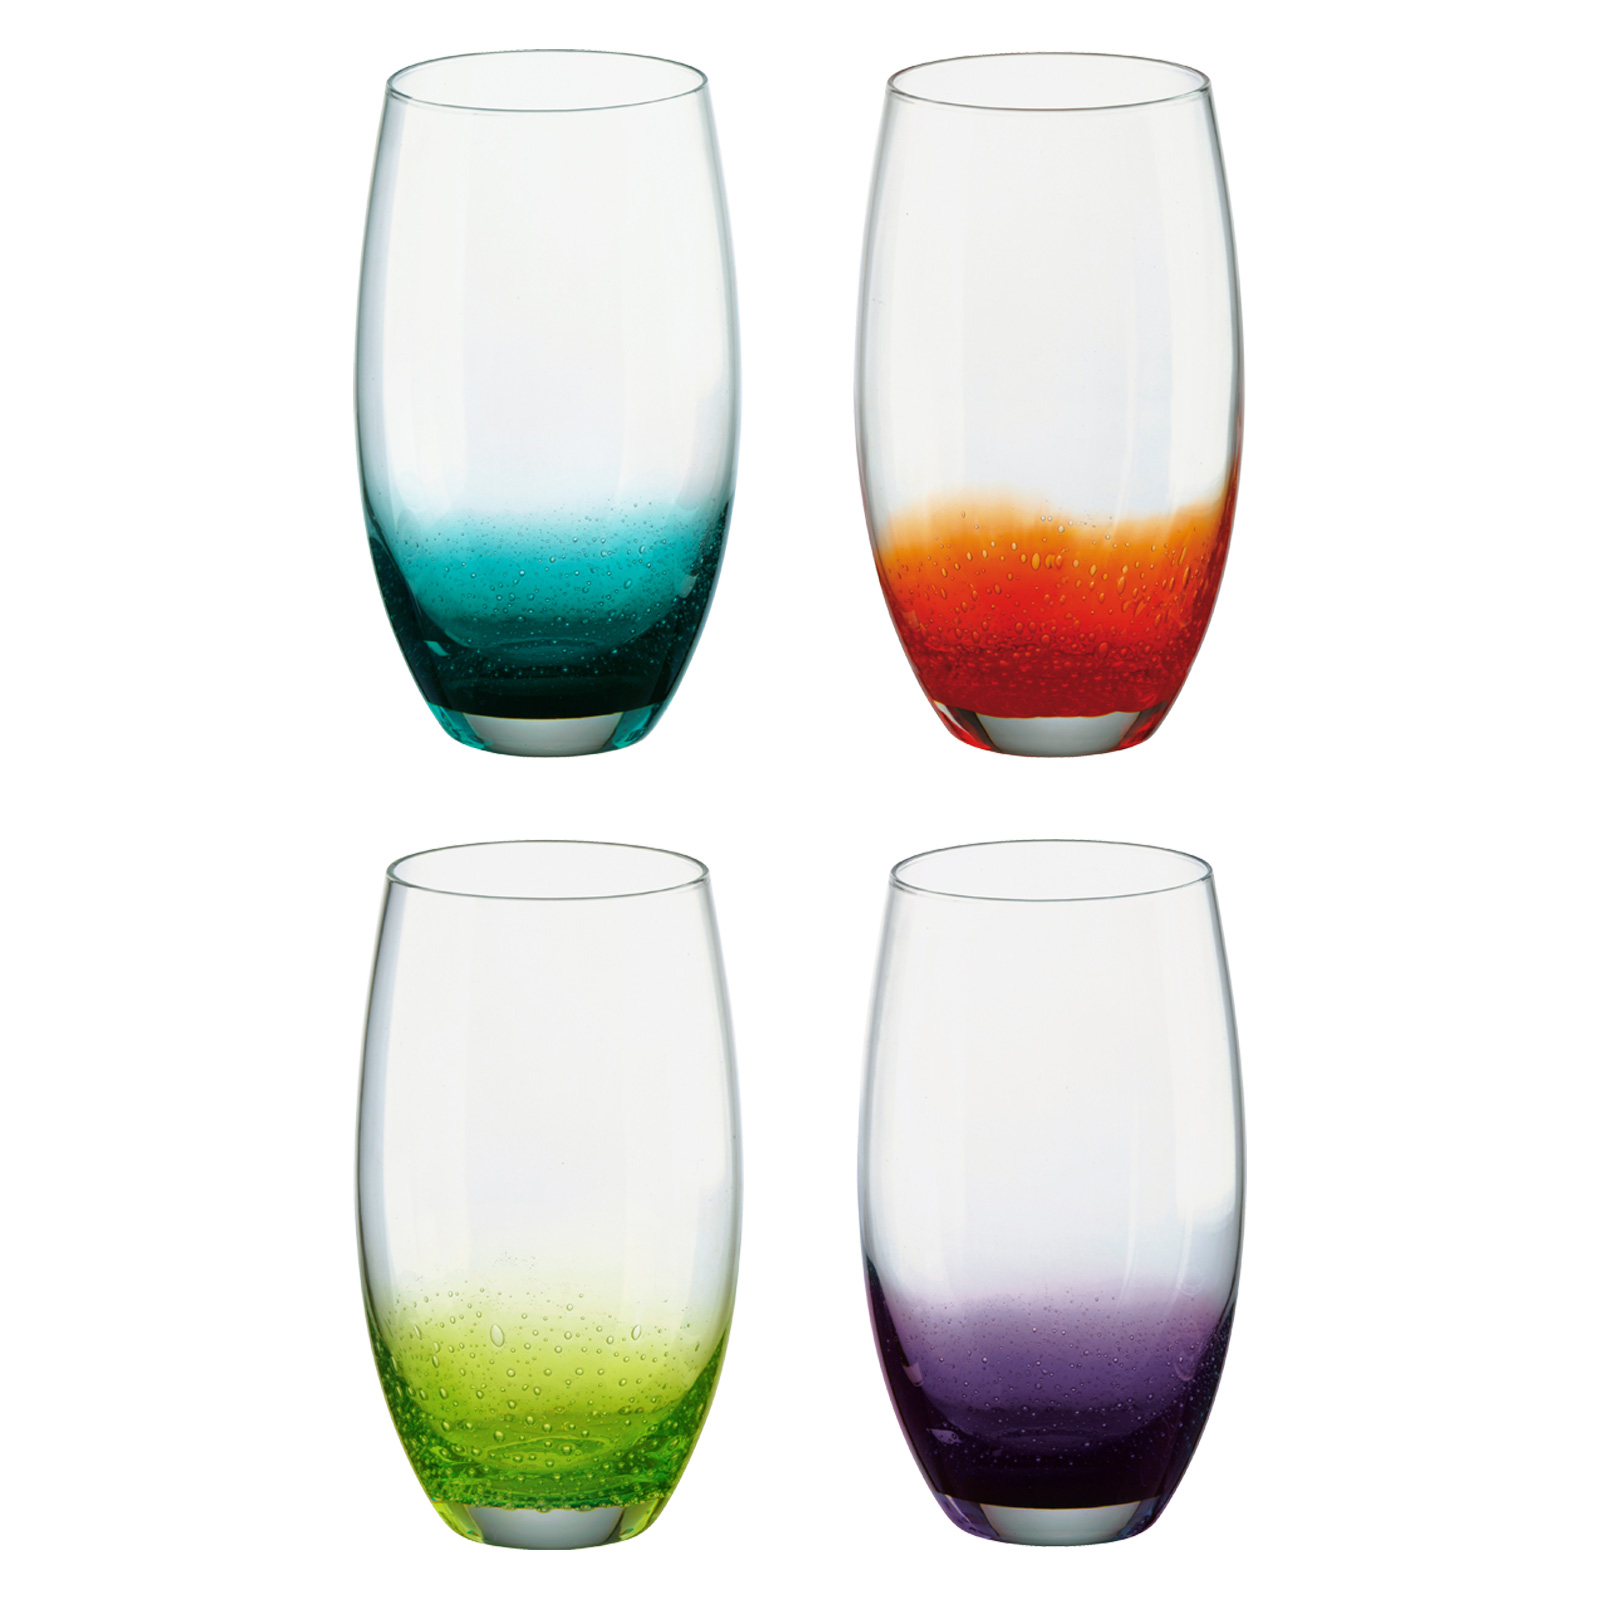 Set of 4 Fizz Hiball Tumblers by Anton Studio Designs